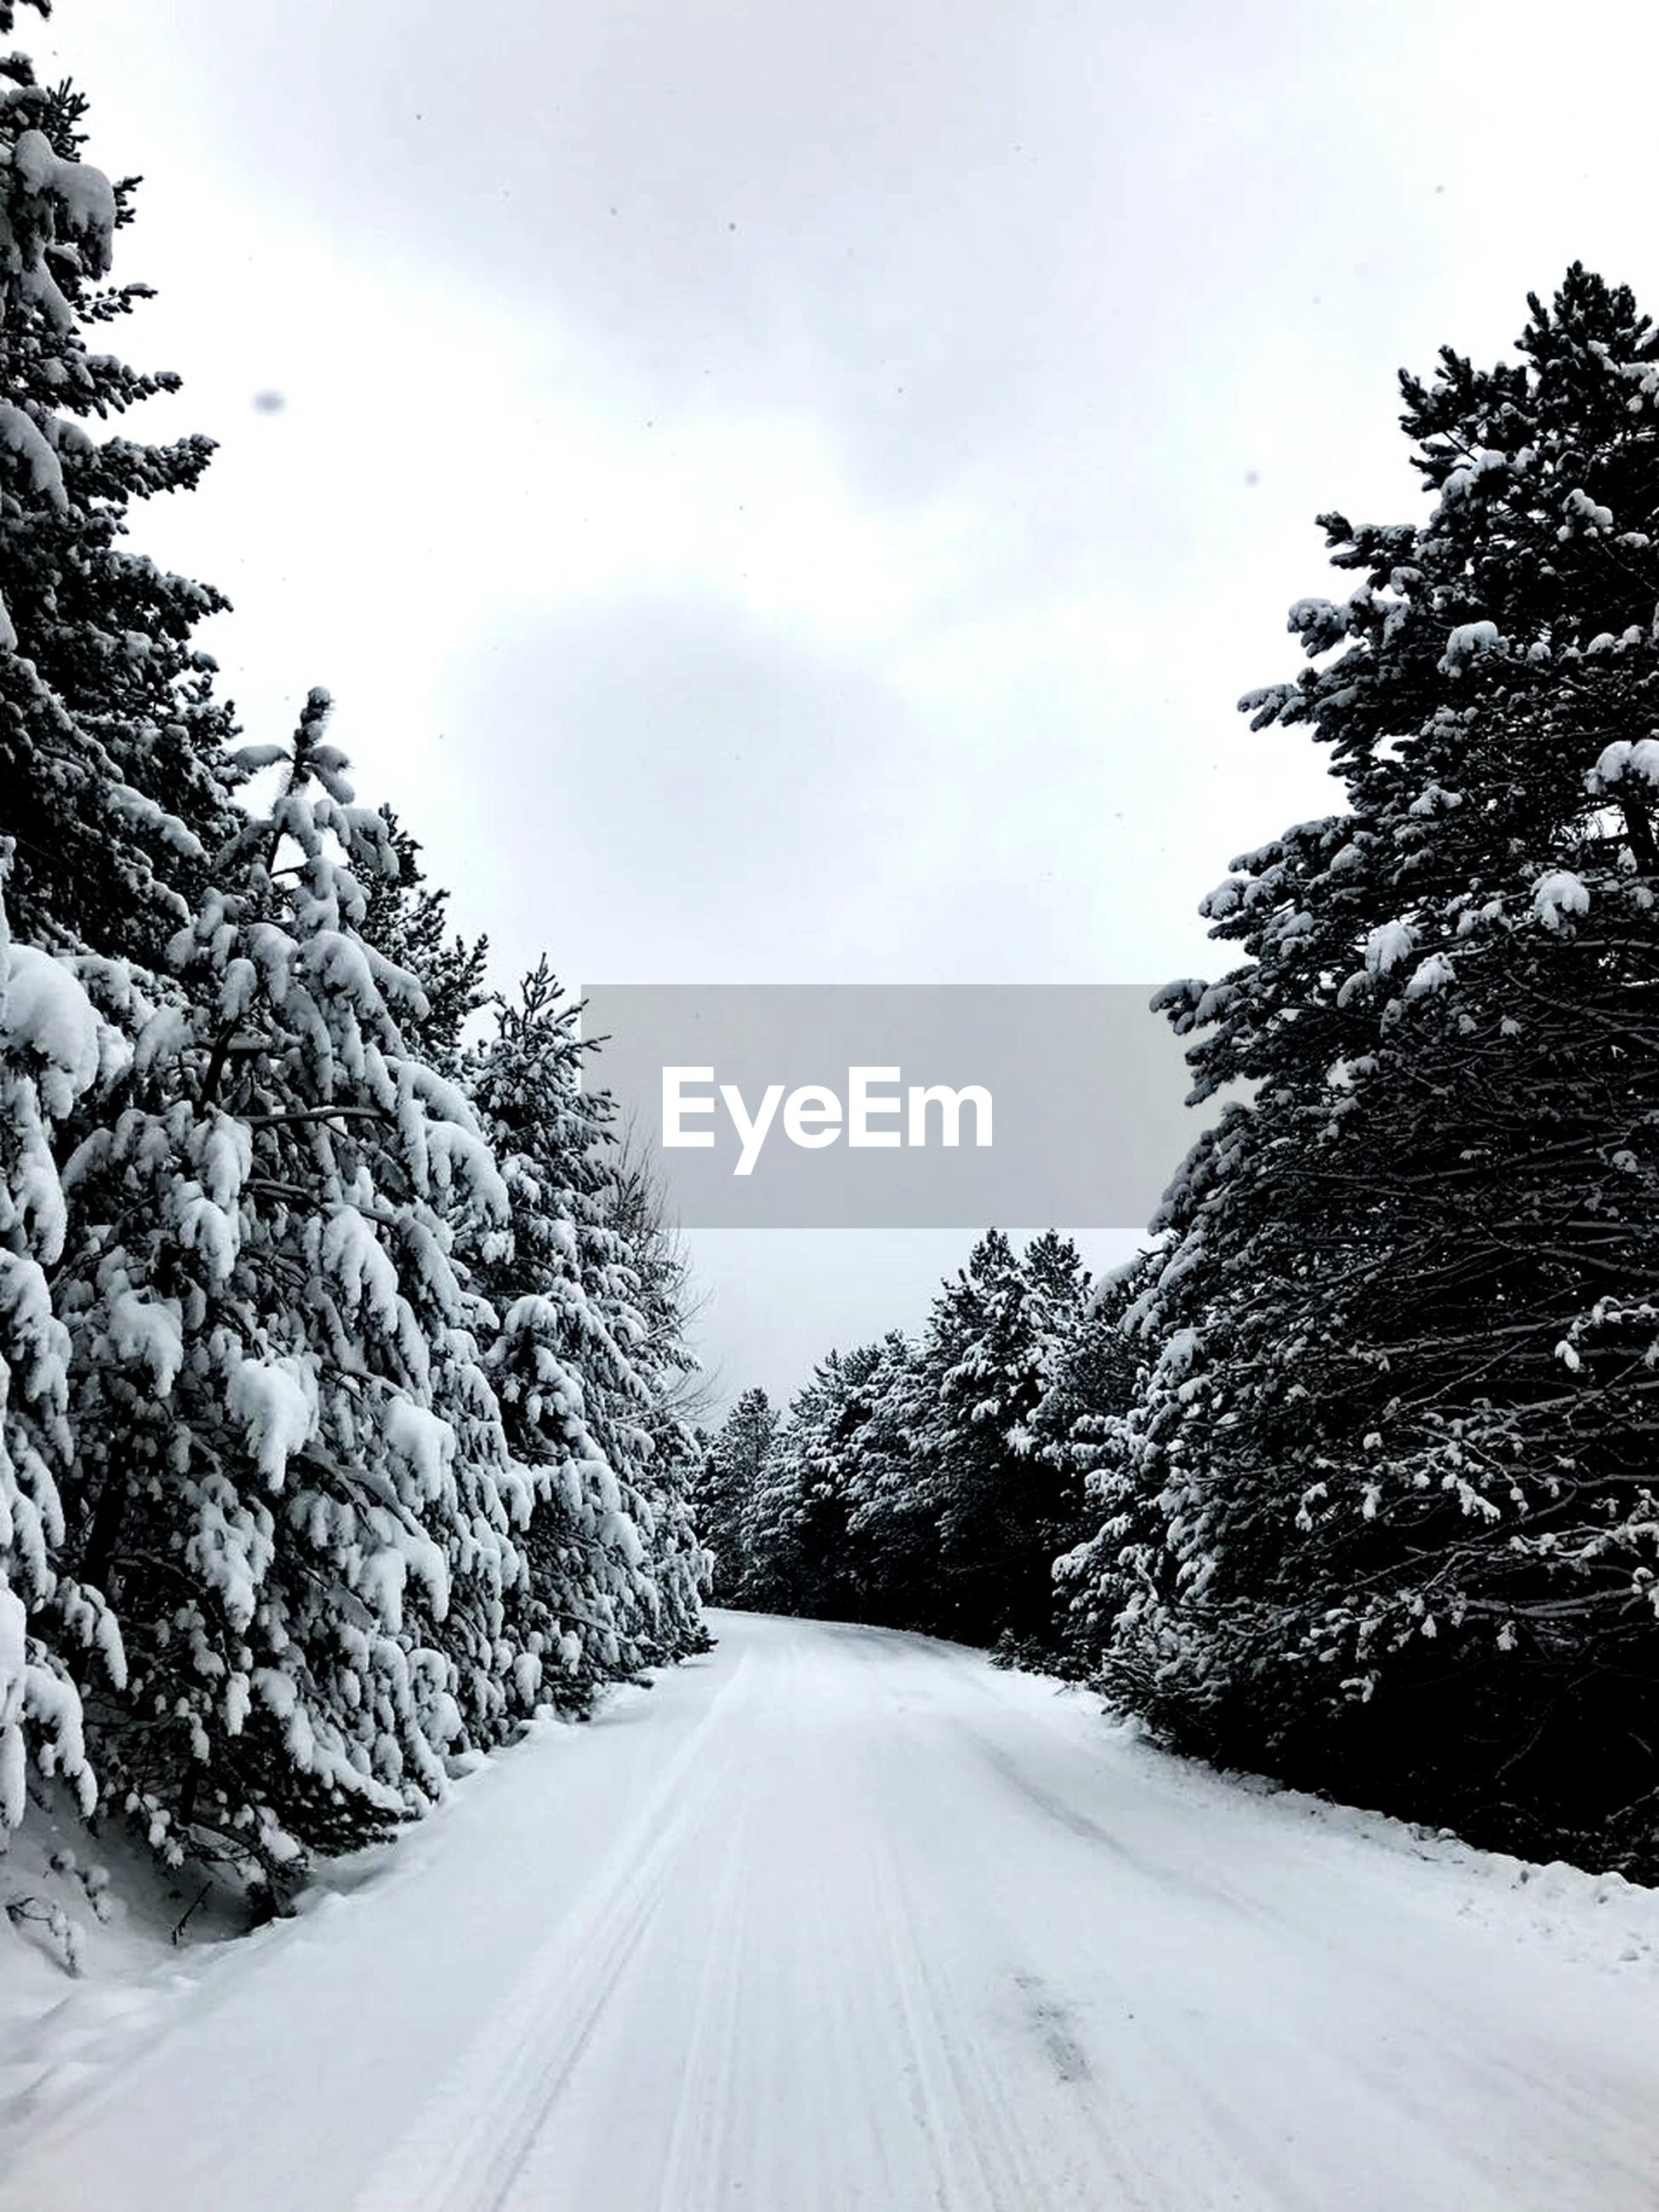 tree, snow, road, winter, cold temperature, the way forward, transportation, no people, nature, scenics, sky, beauty in nature, outdoors, snowing, day